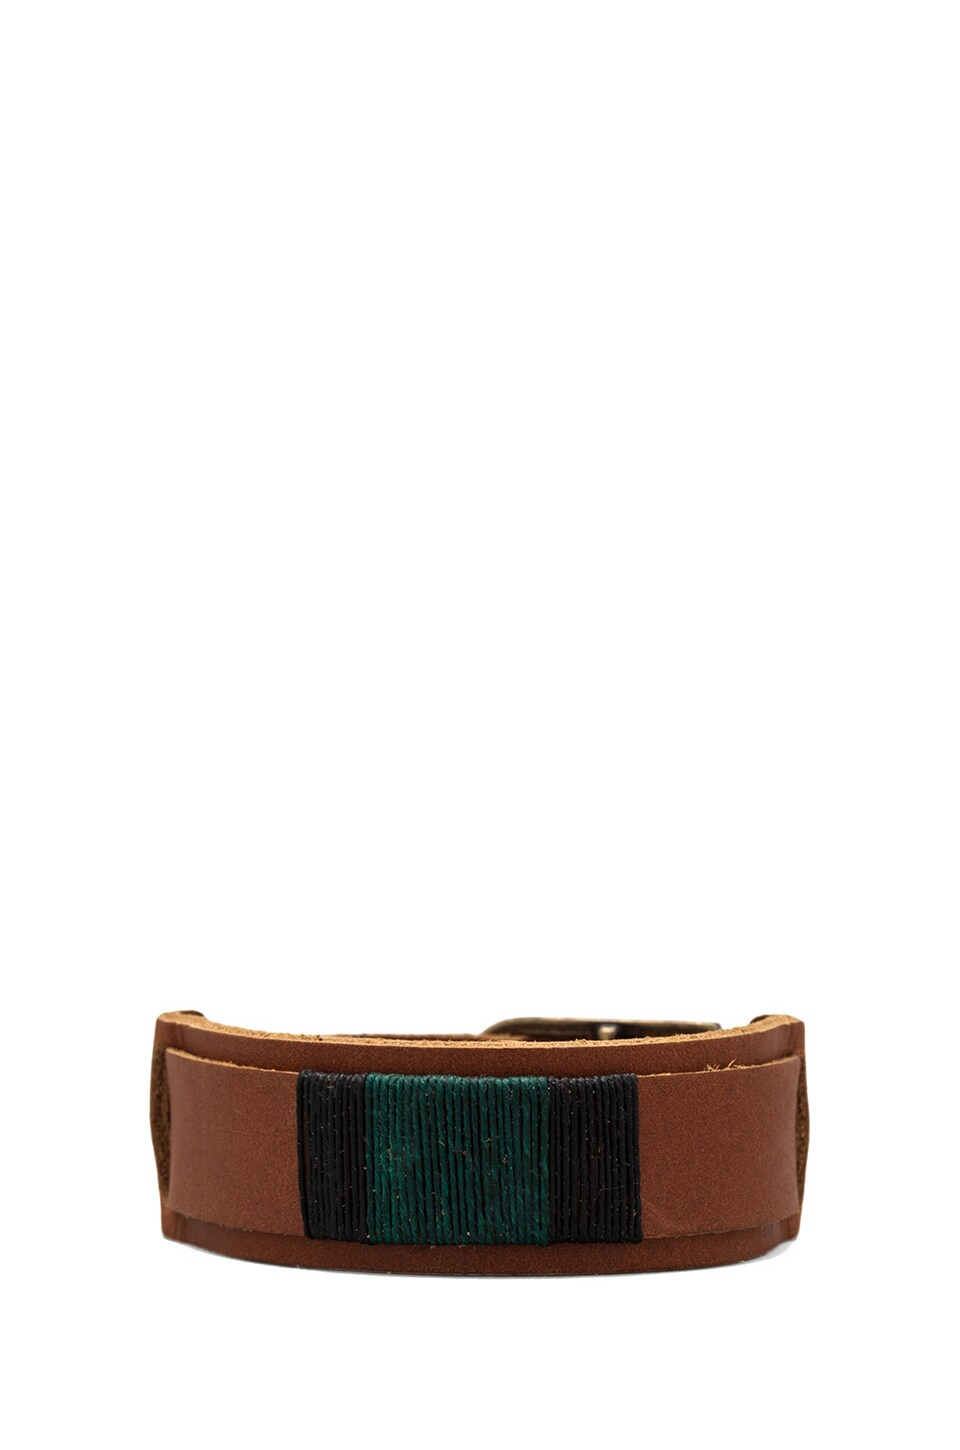 griffin Colton Slim Cuff in Light Brown/Forest